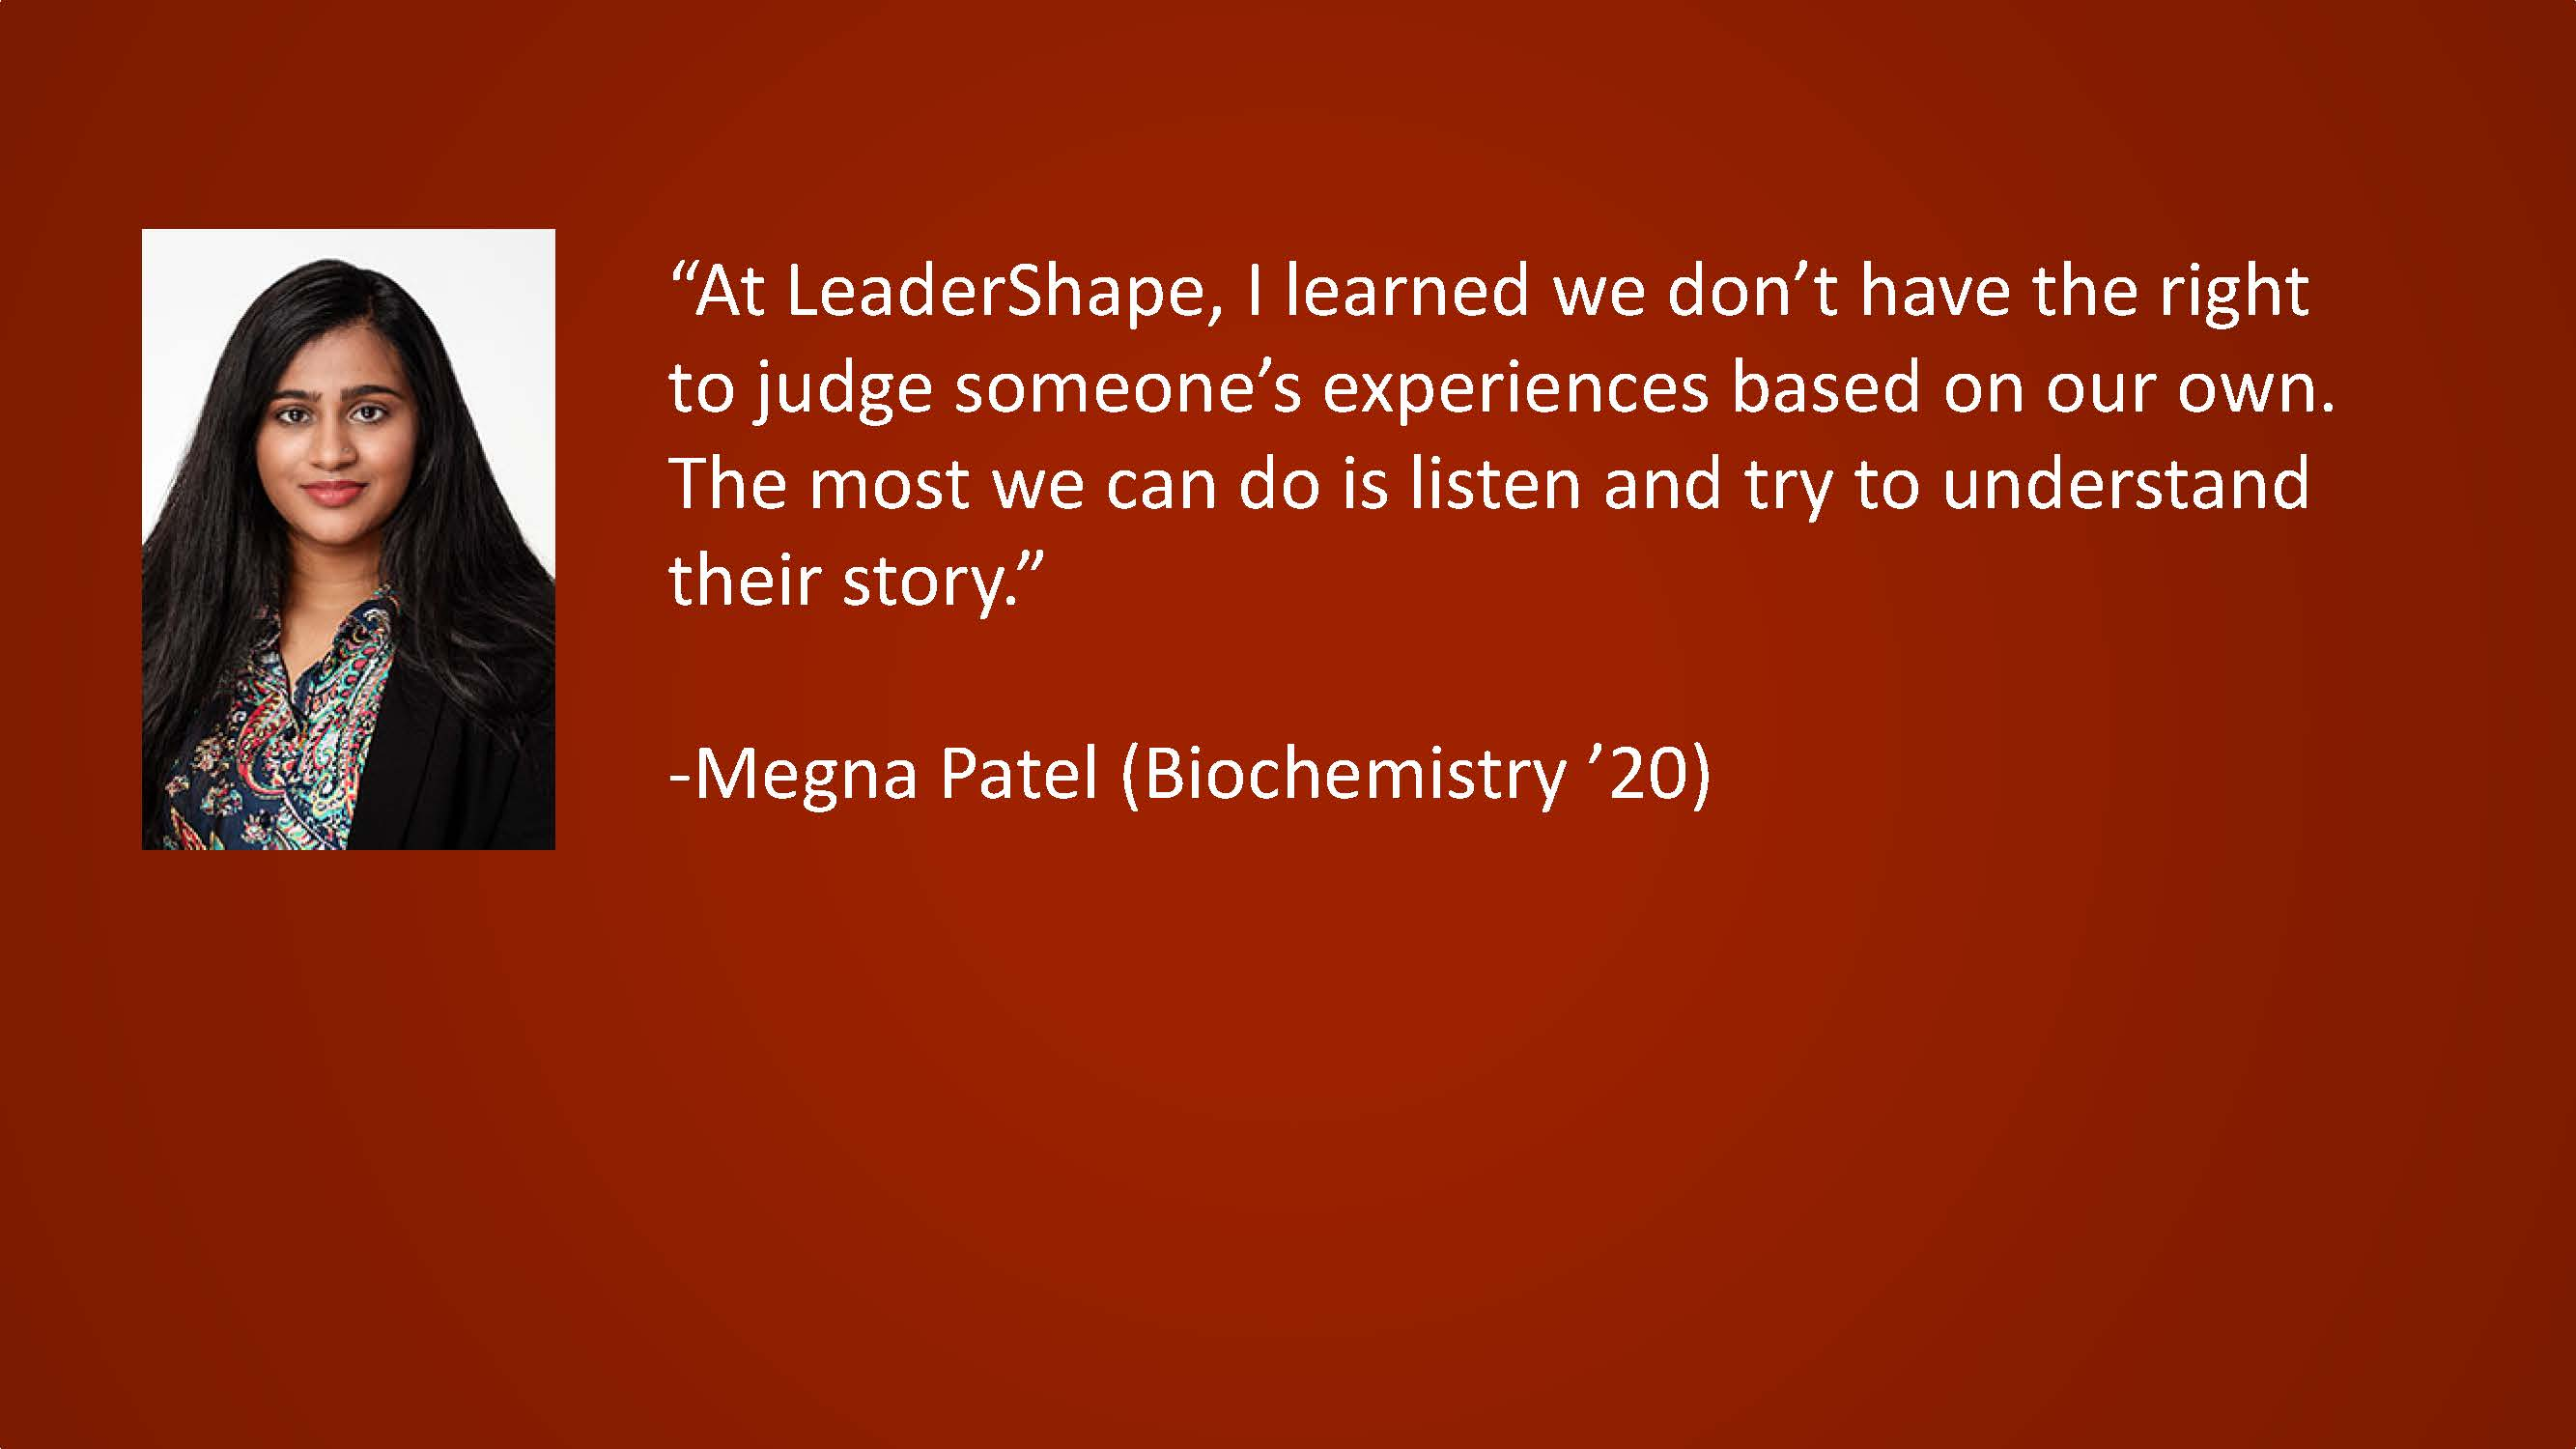 At LeaderShape, I learned we don't have the right to judge someone's experiences based on our own. The most we can do is listen and try to understand their story. — Megna Patel (Biochemistry '20)